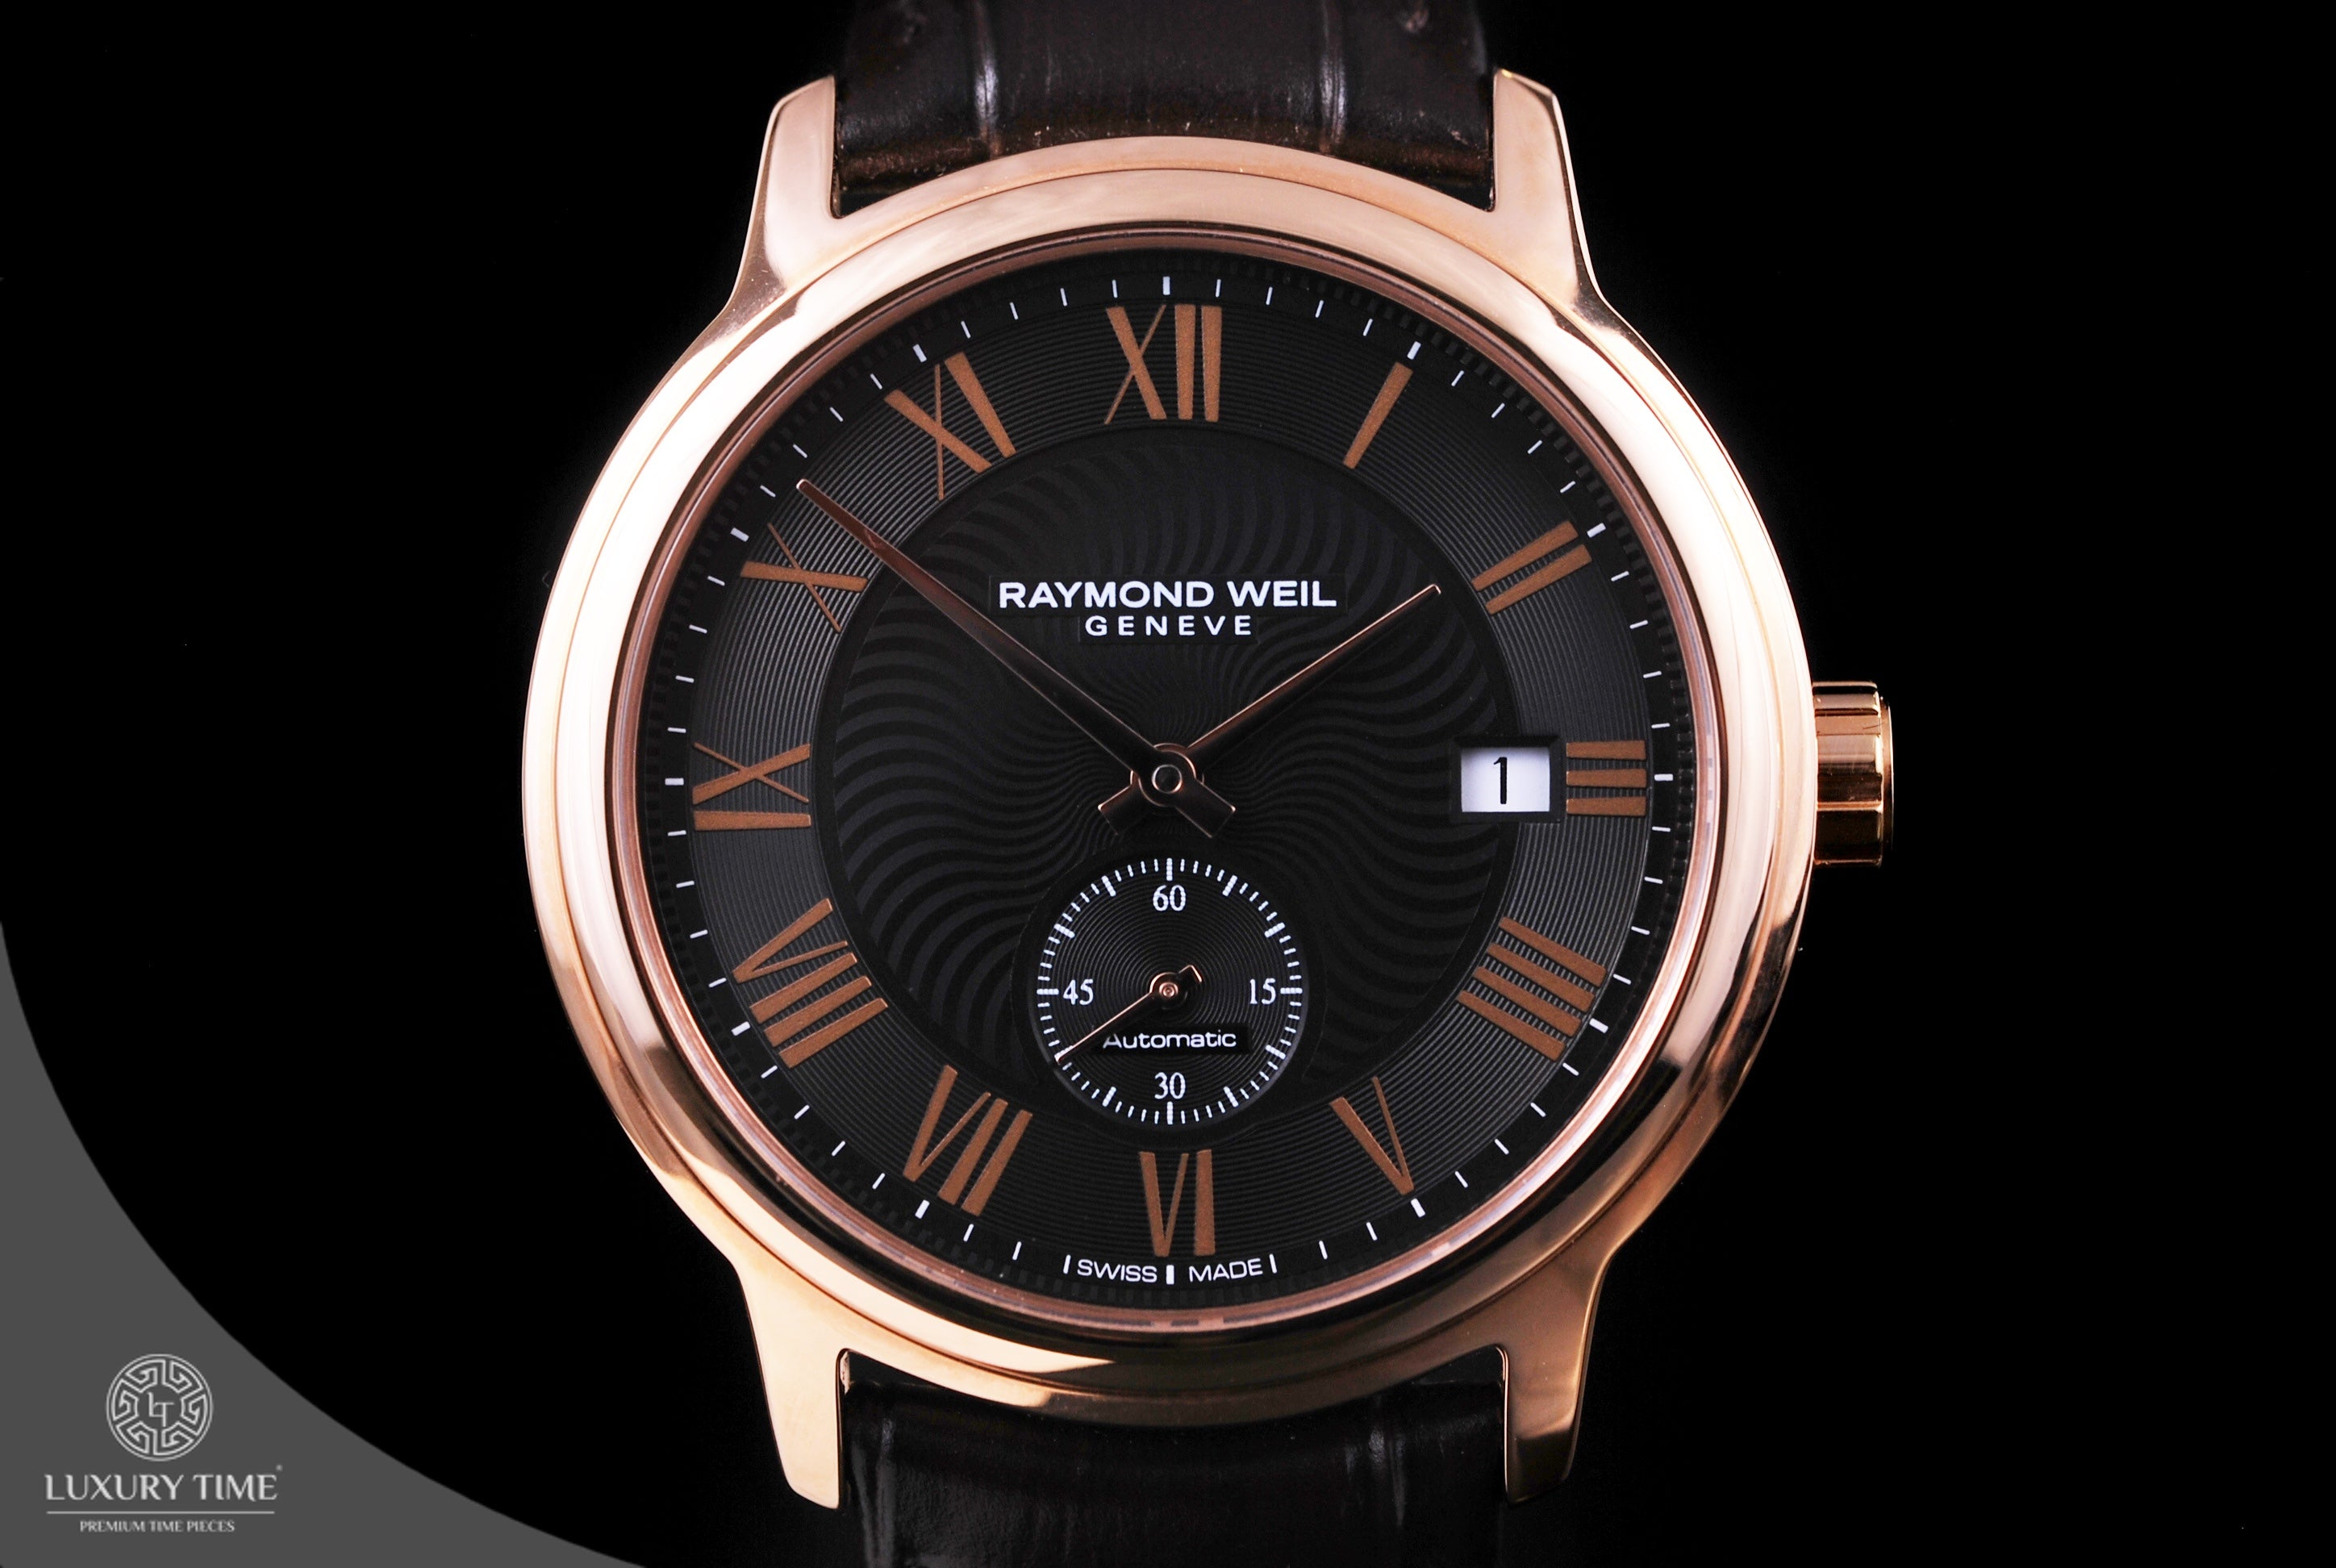 raymond nabucco weil watches